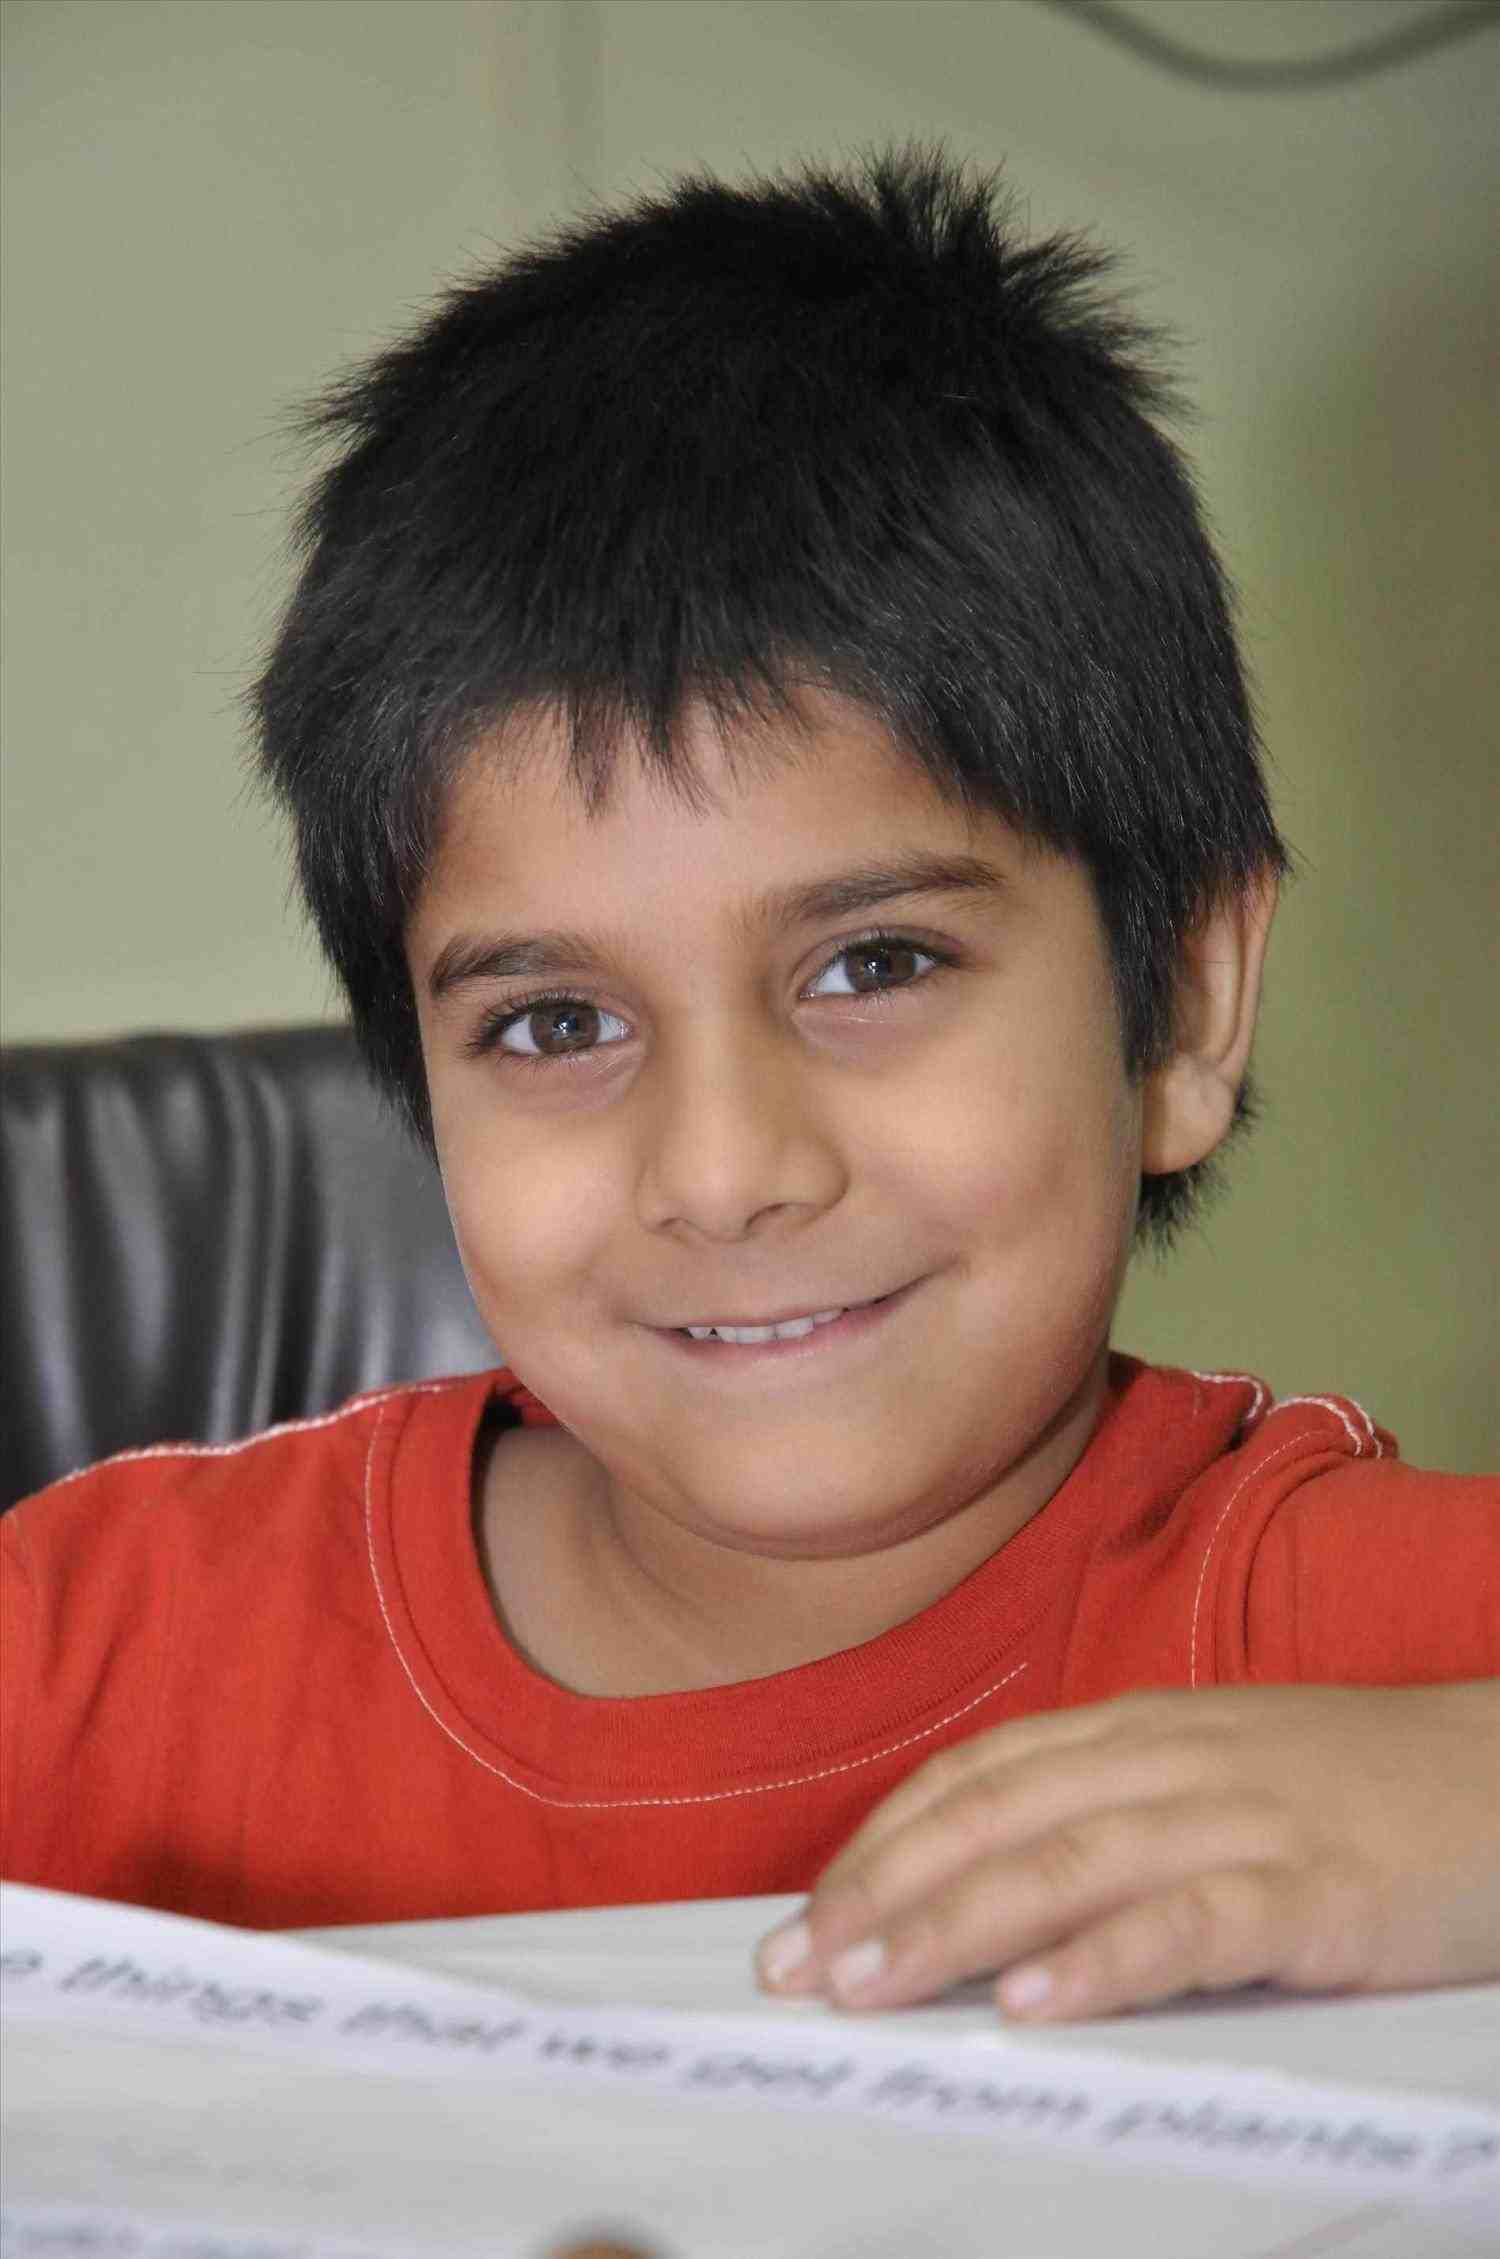 hairstyles for indian school boy | hair stylist and models